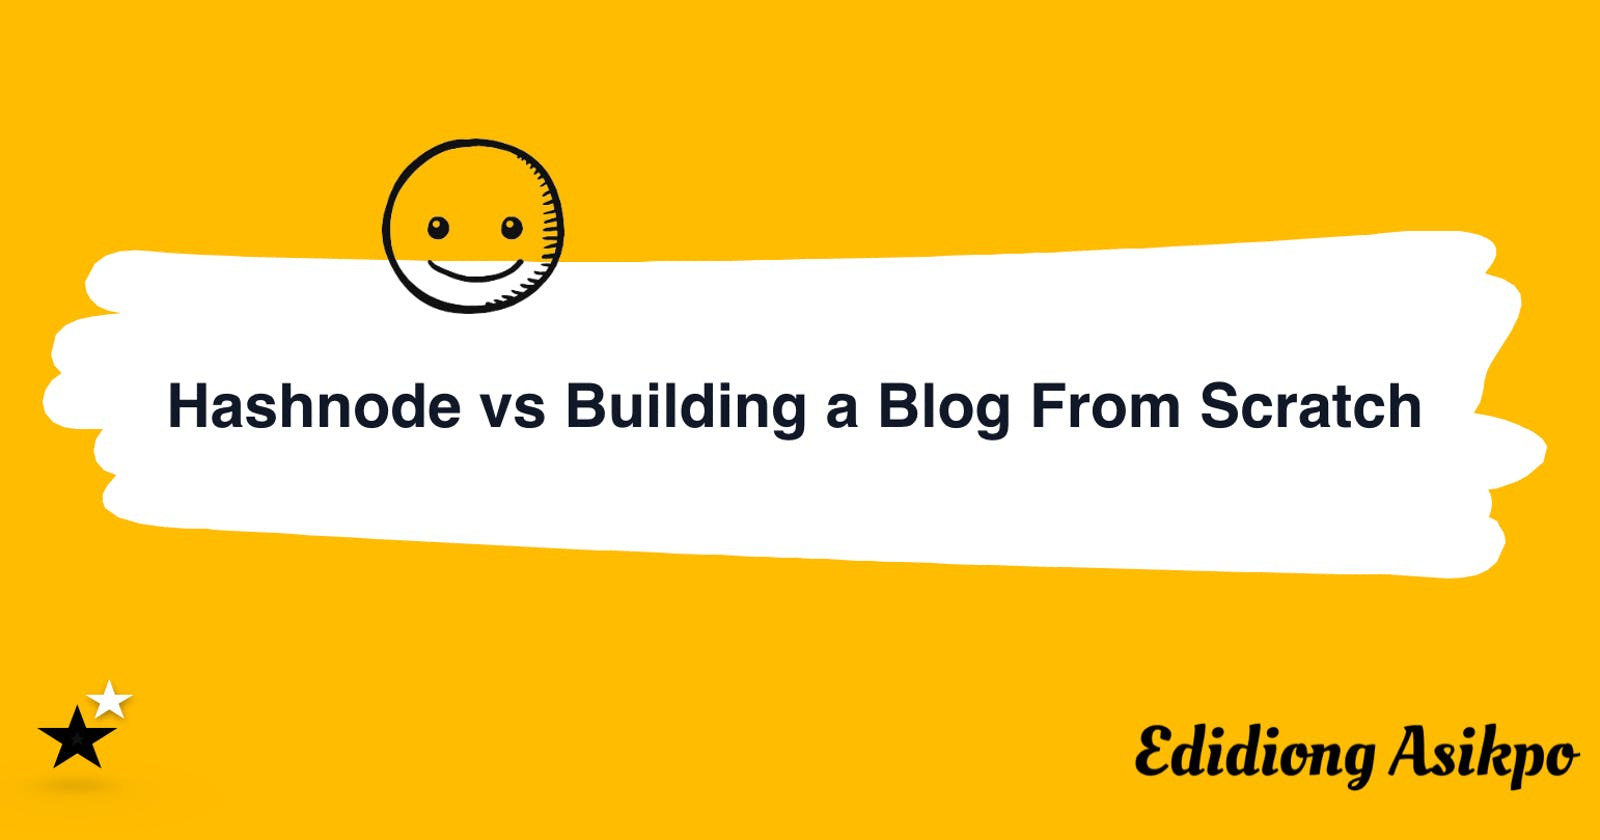 My Thoughts on Using Hashnode vs Building a Blog From Scratch